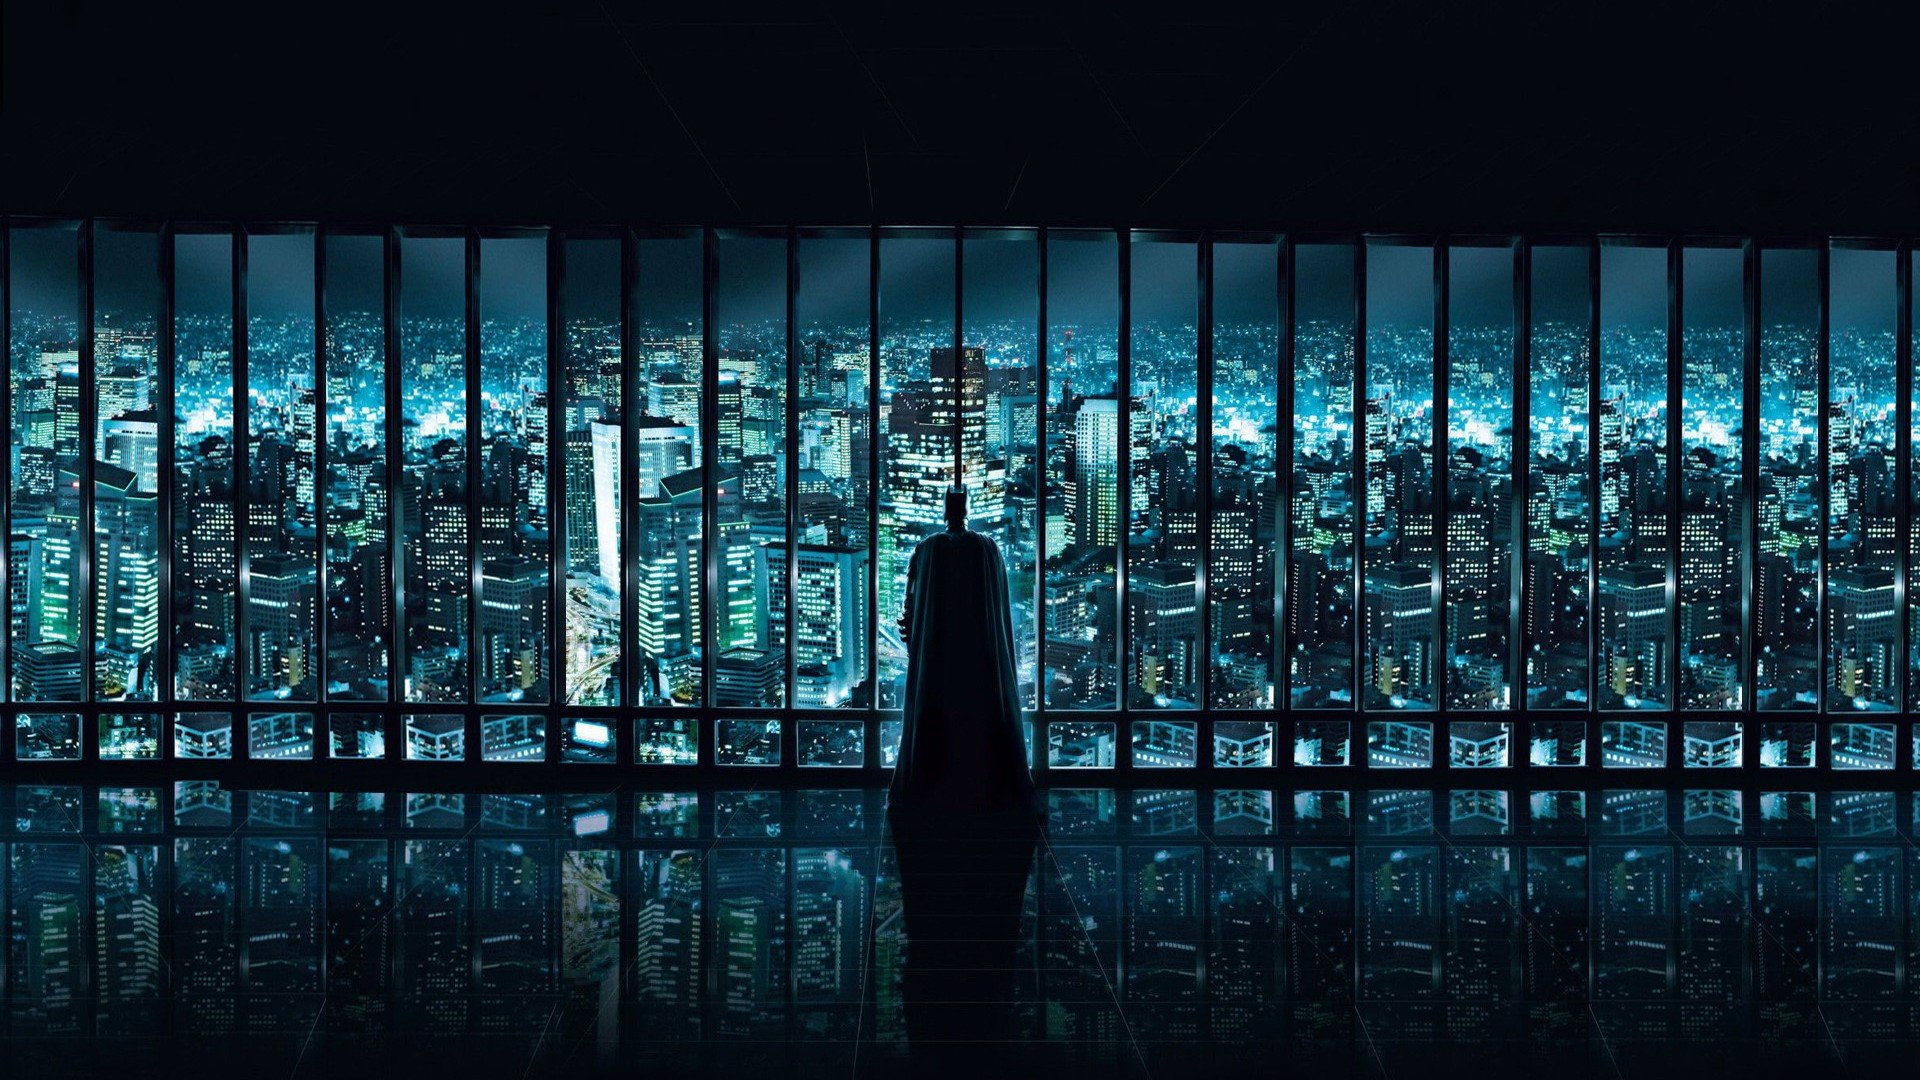 Dark Knight HD backgrounds Wallpaper and make this wallpaper for your 1920x1080